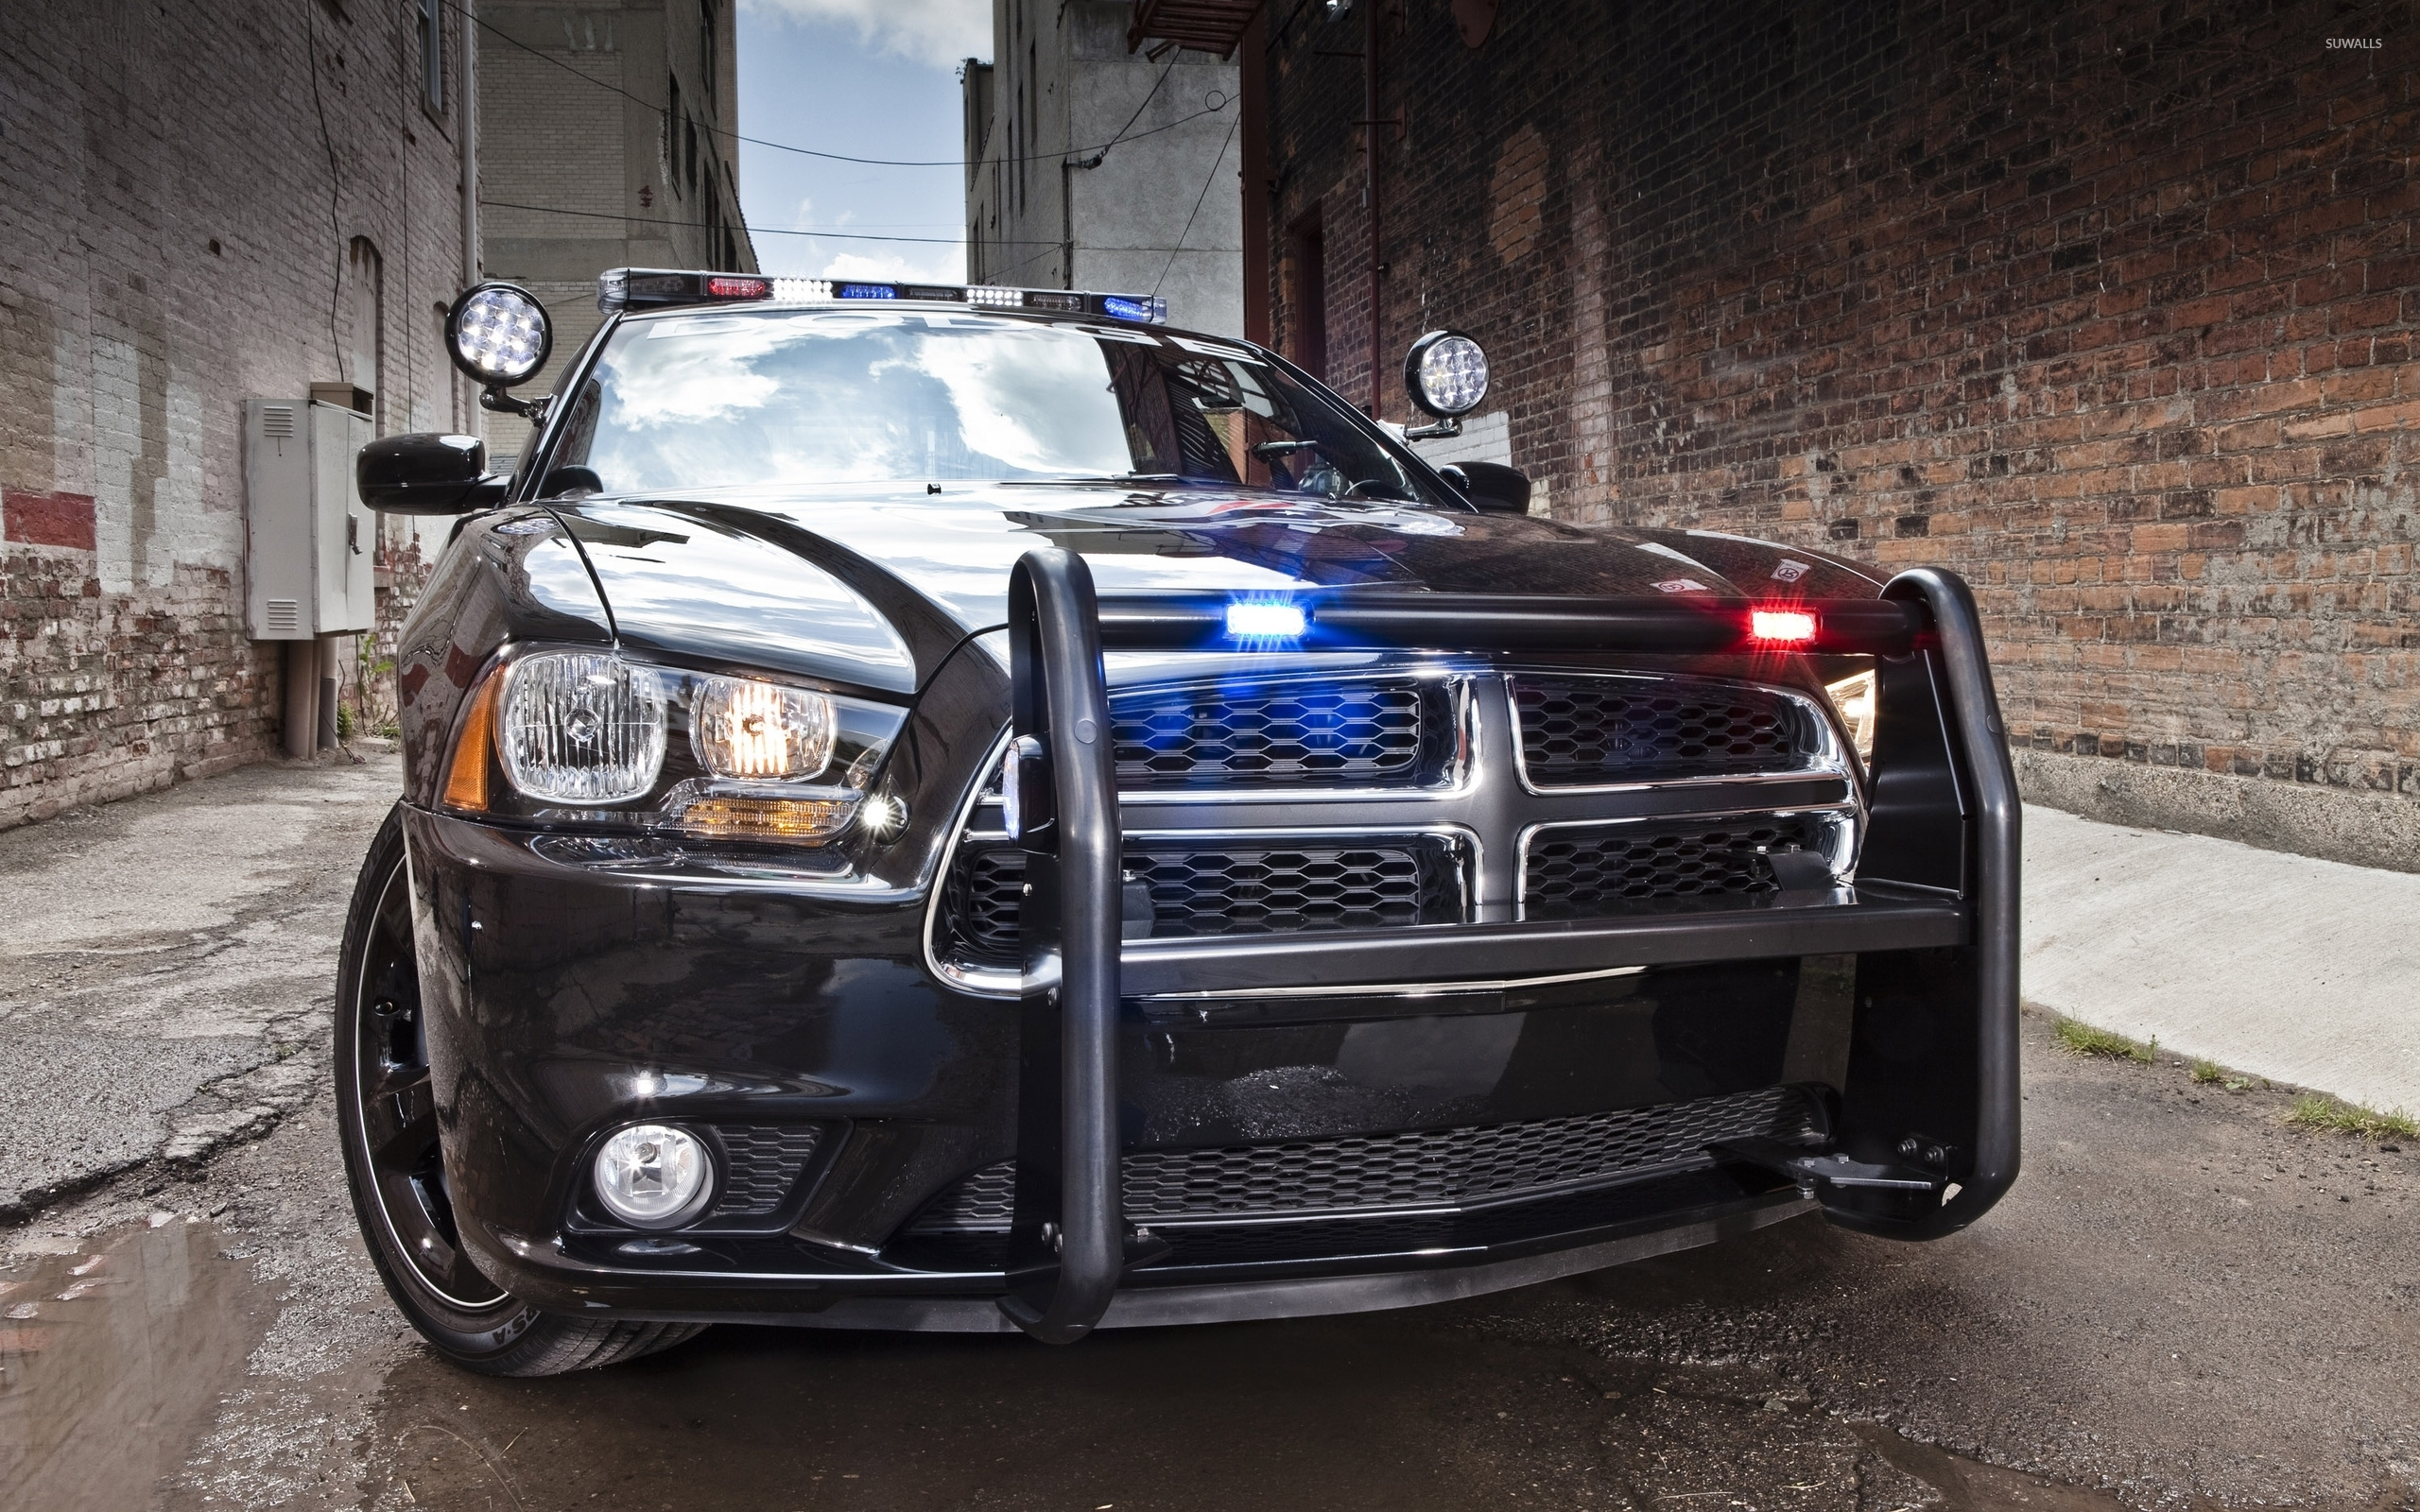 Dodge Charger Police Car 2 Wallpaper Car Wallpapers